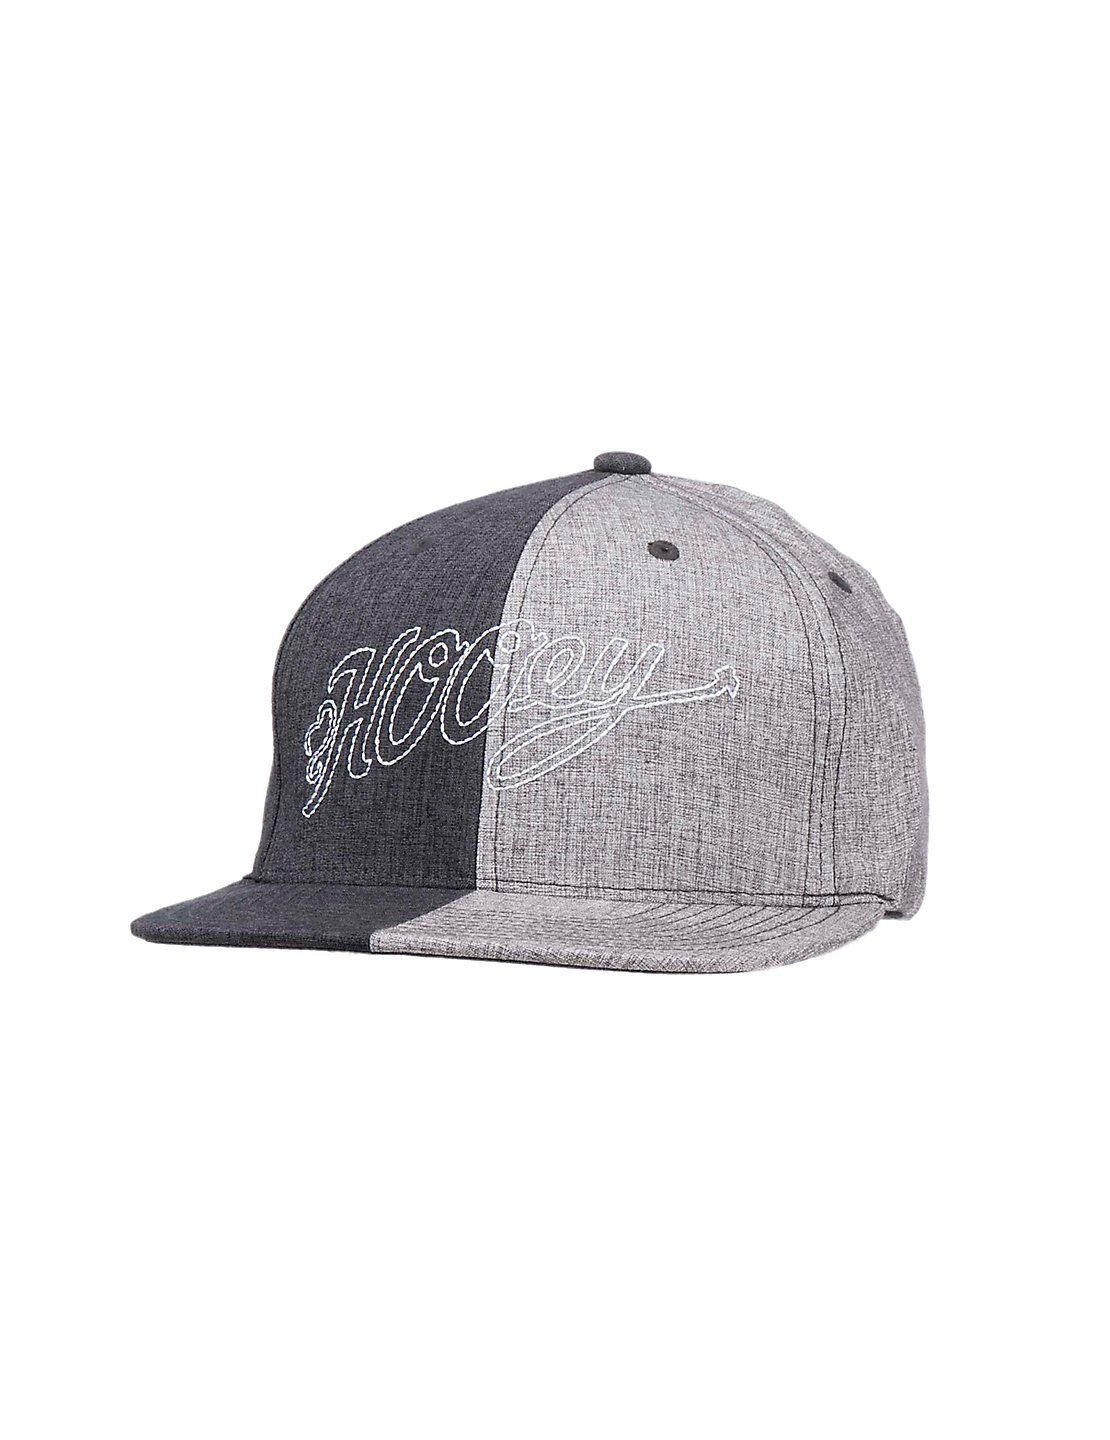 f4d2a51e4 HOOey Grey and Charcoal Two Tone with White Script Logo Snap Back ...